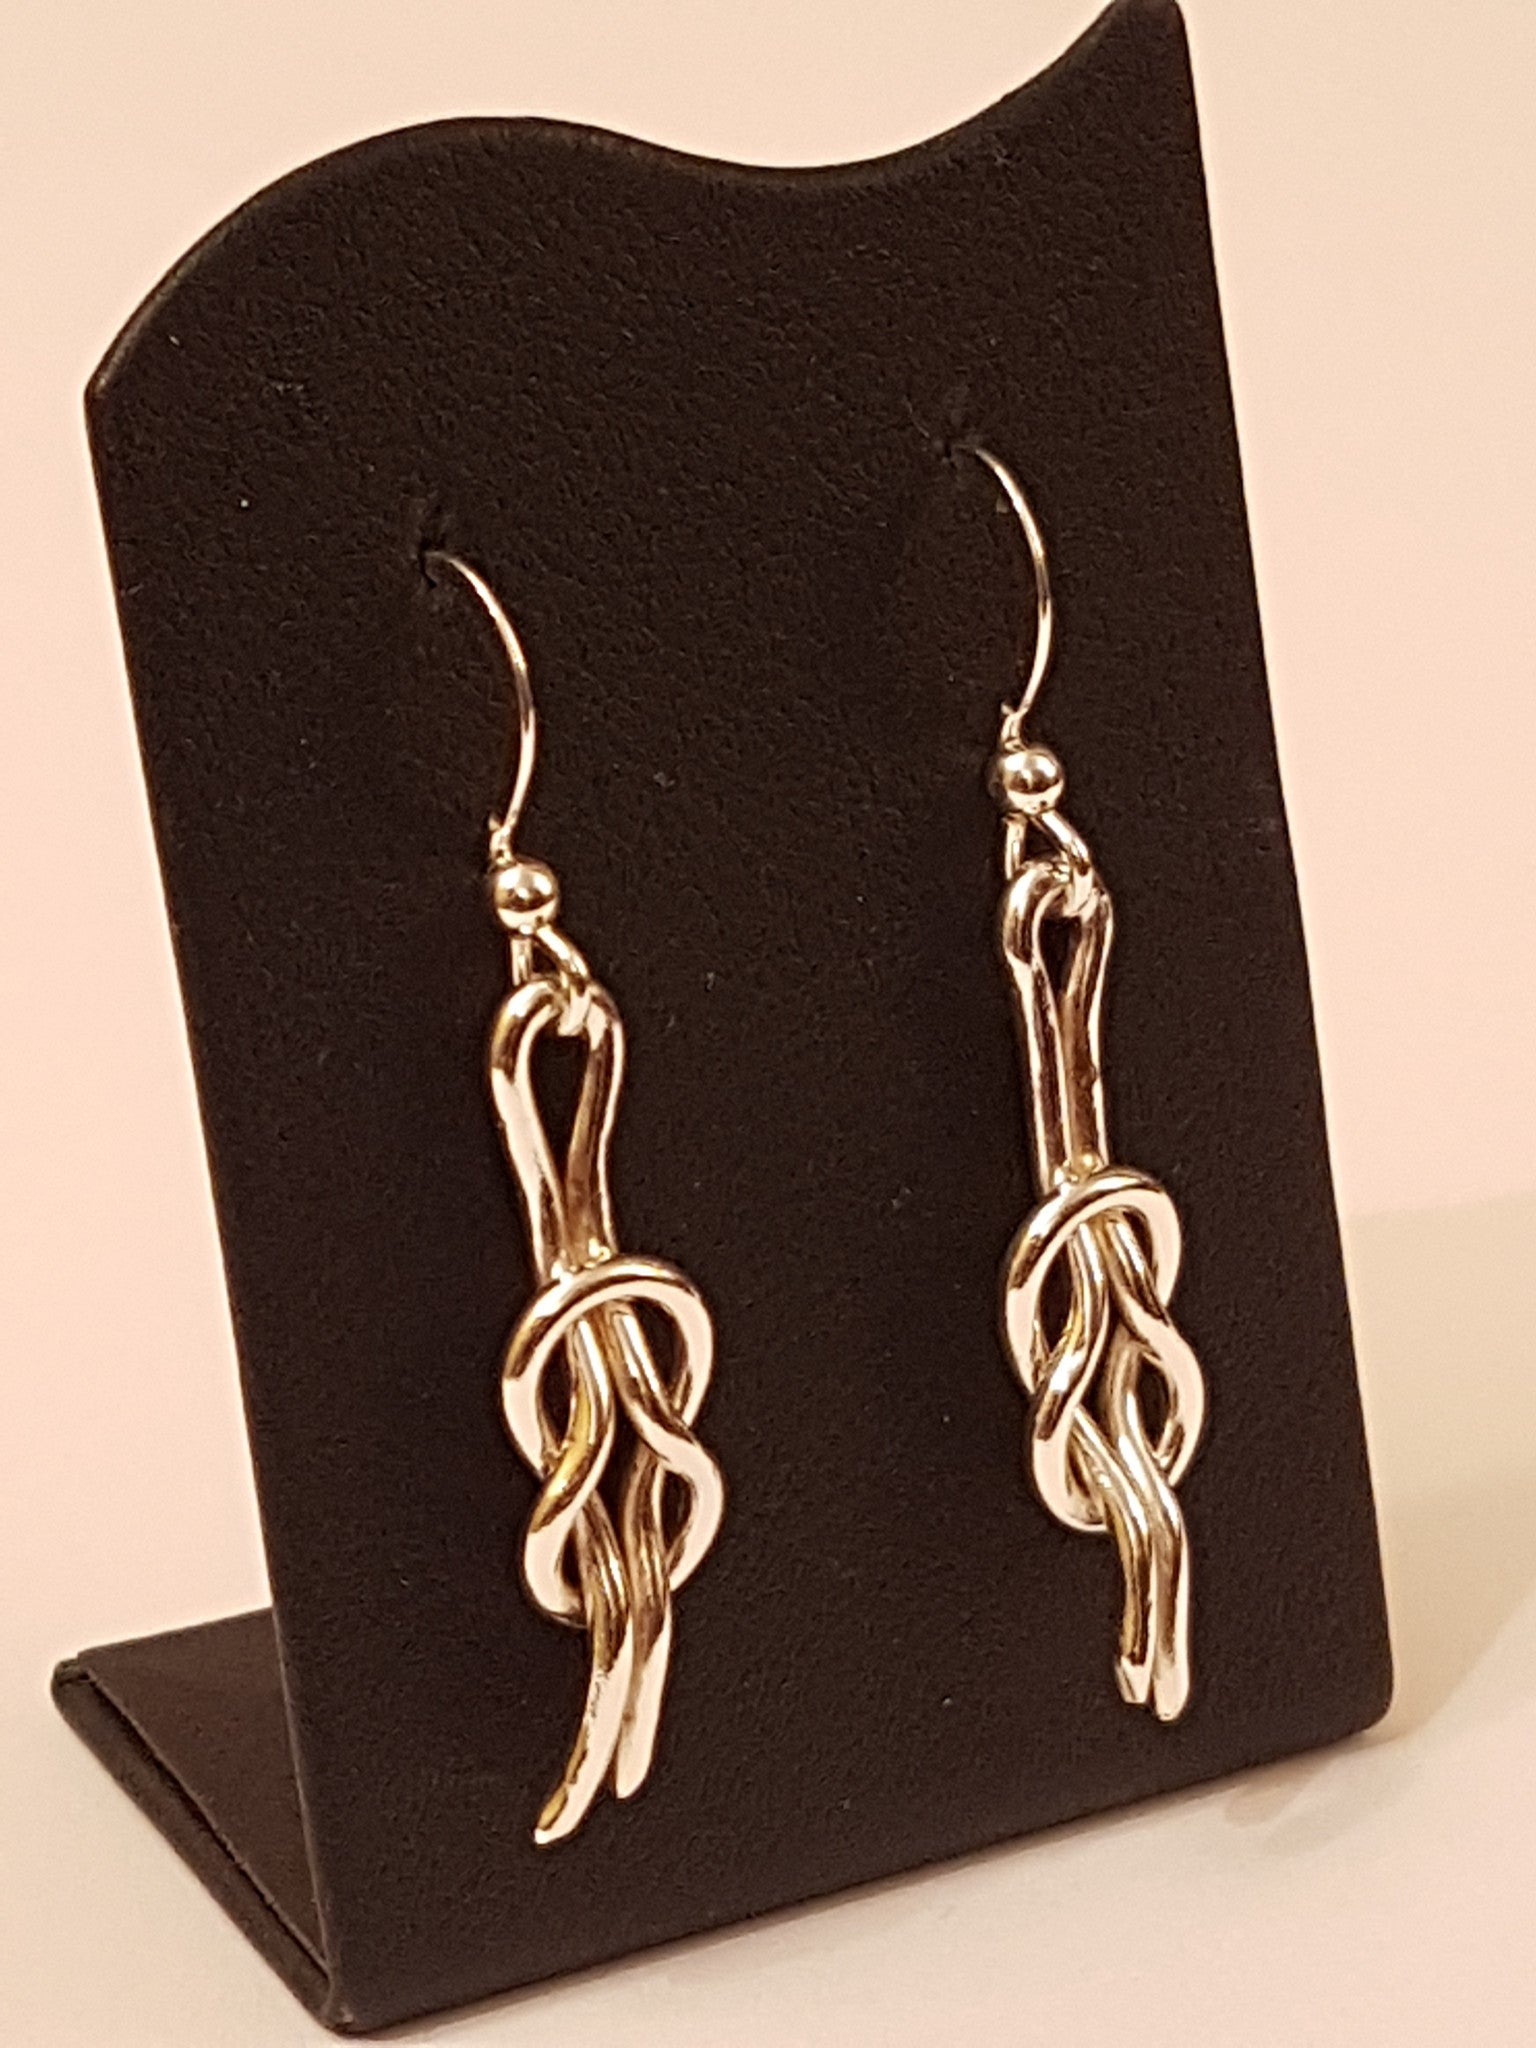 Reef Knot Earrings (pair)